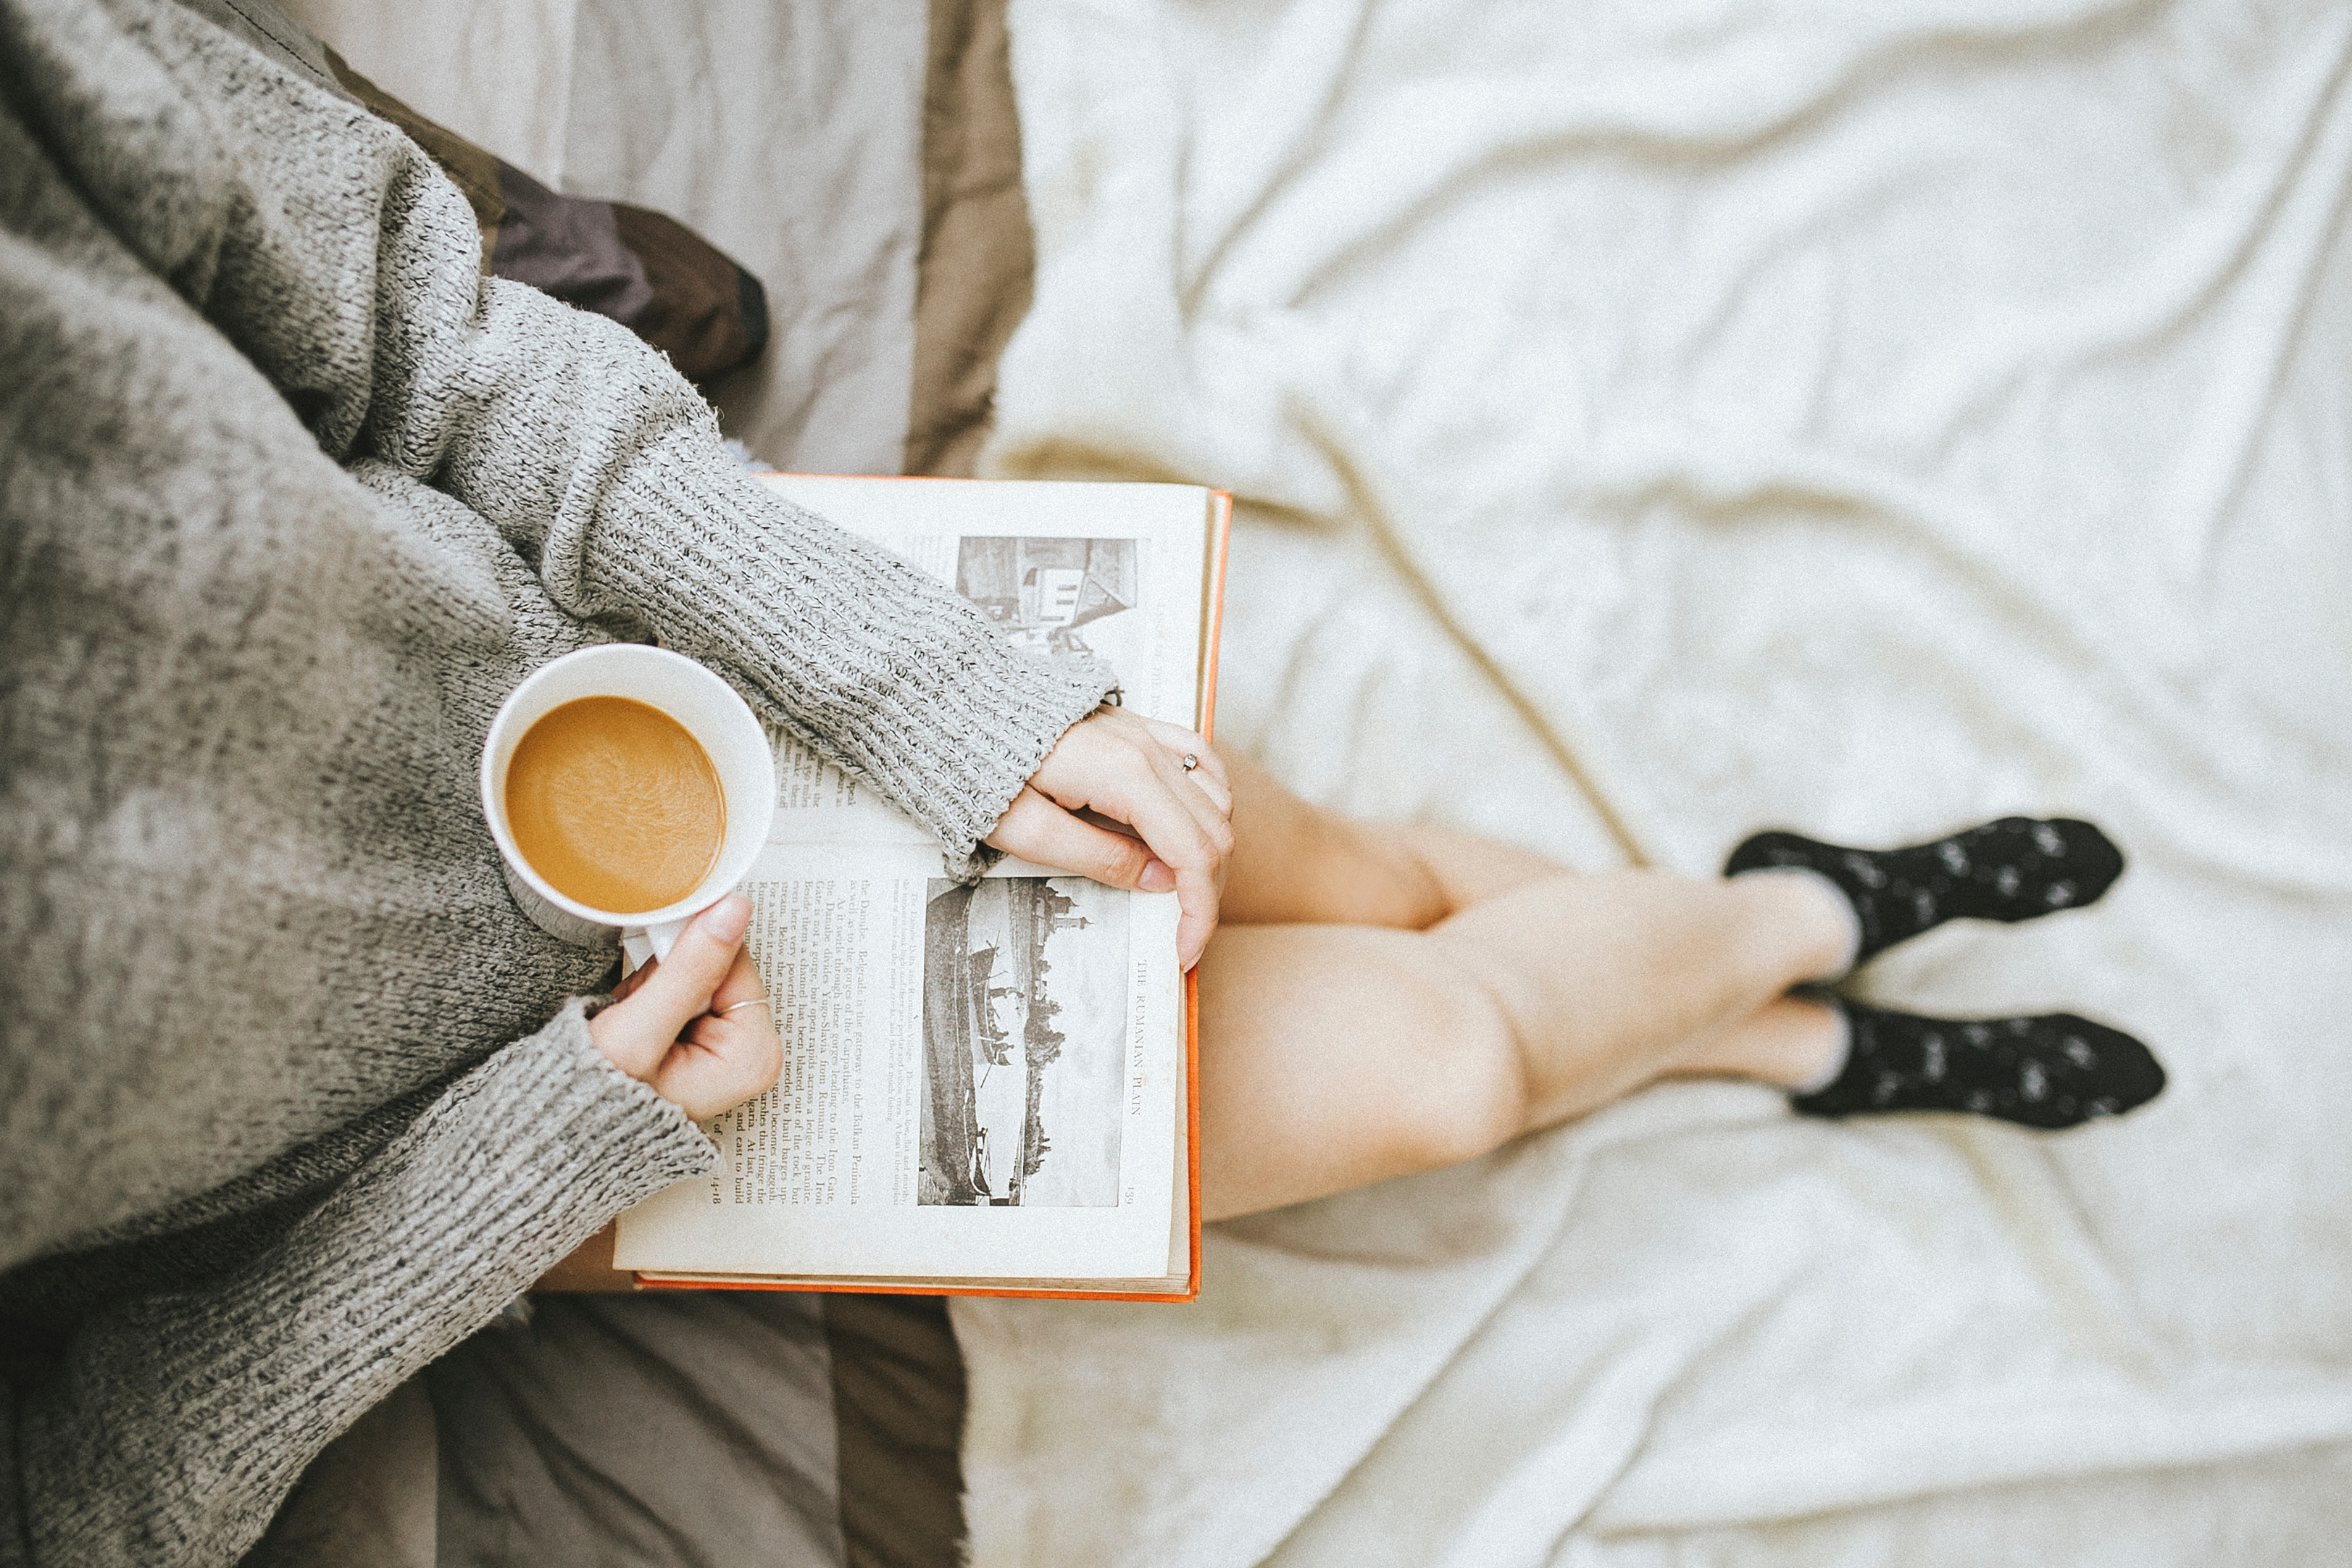 Woman sitting with a book and a cup of coffee